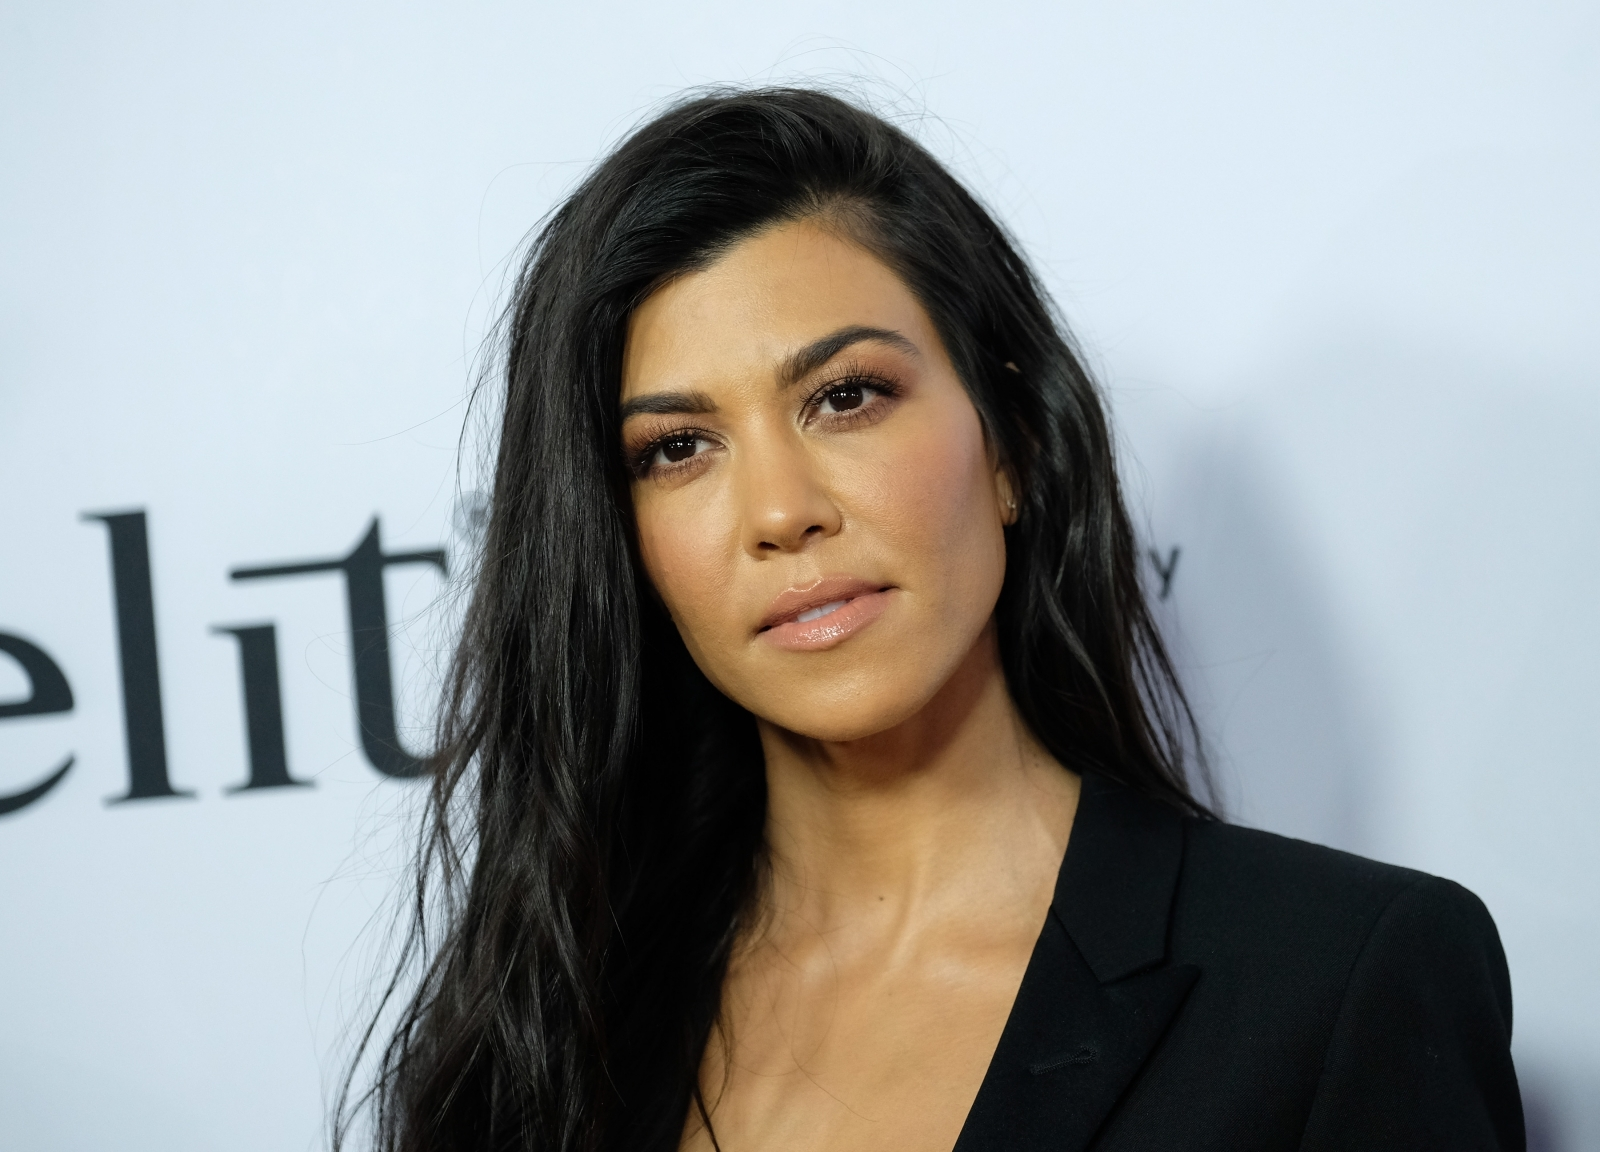 Kourtney Kardashian Mom Shamed For Ditching Kids To Holiday With Boyfriend In Egypt Horrible